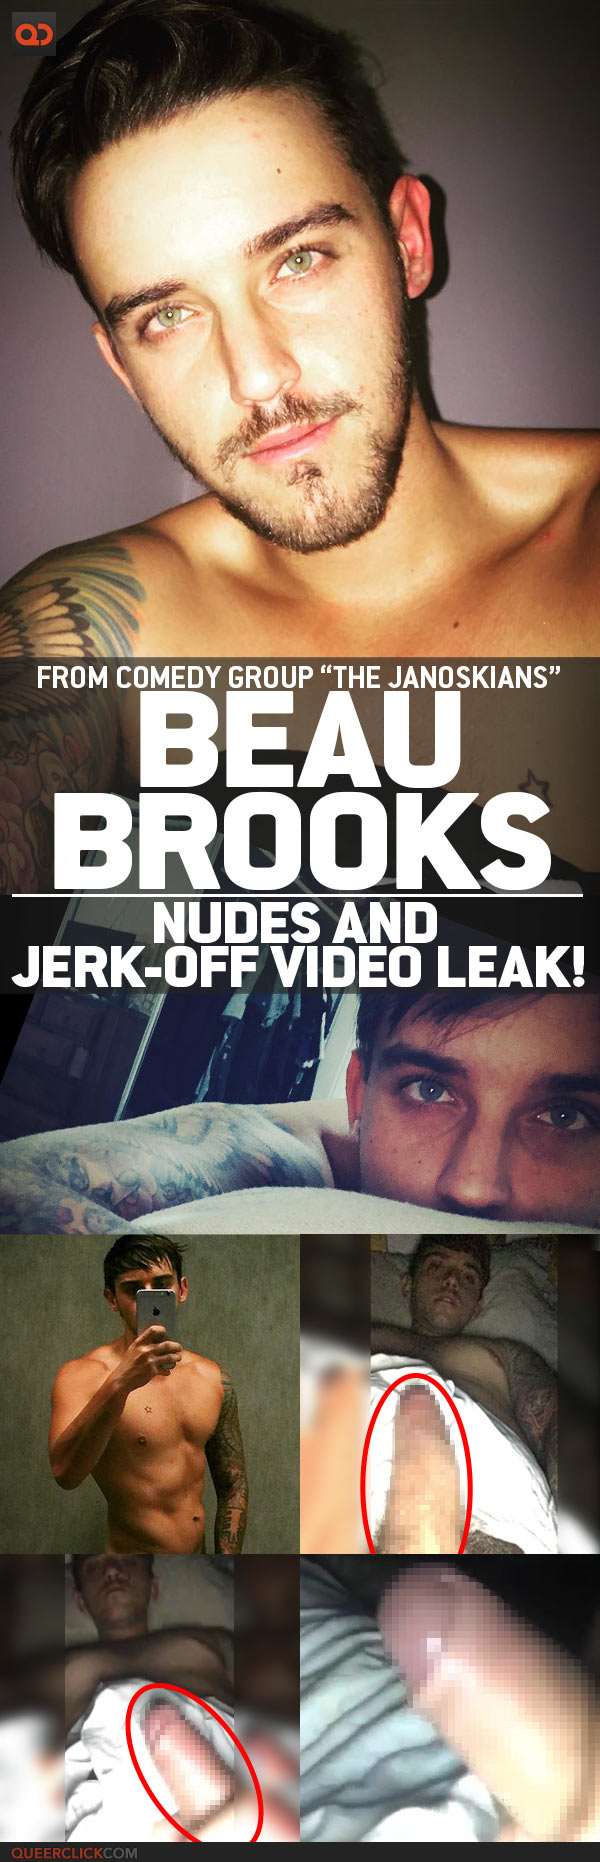 "Beau Brooks, From Comedy Group ""The Janoskians"", Nudes And Jerk-Off Video Leak!"